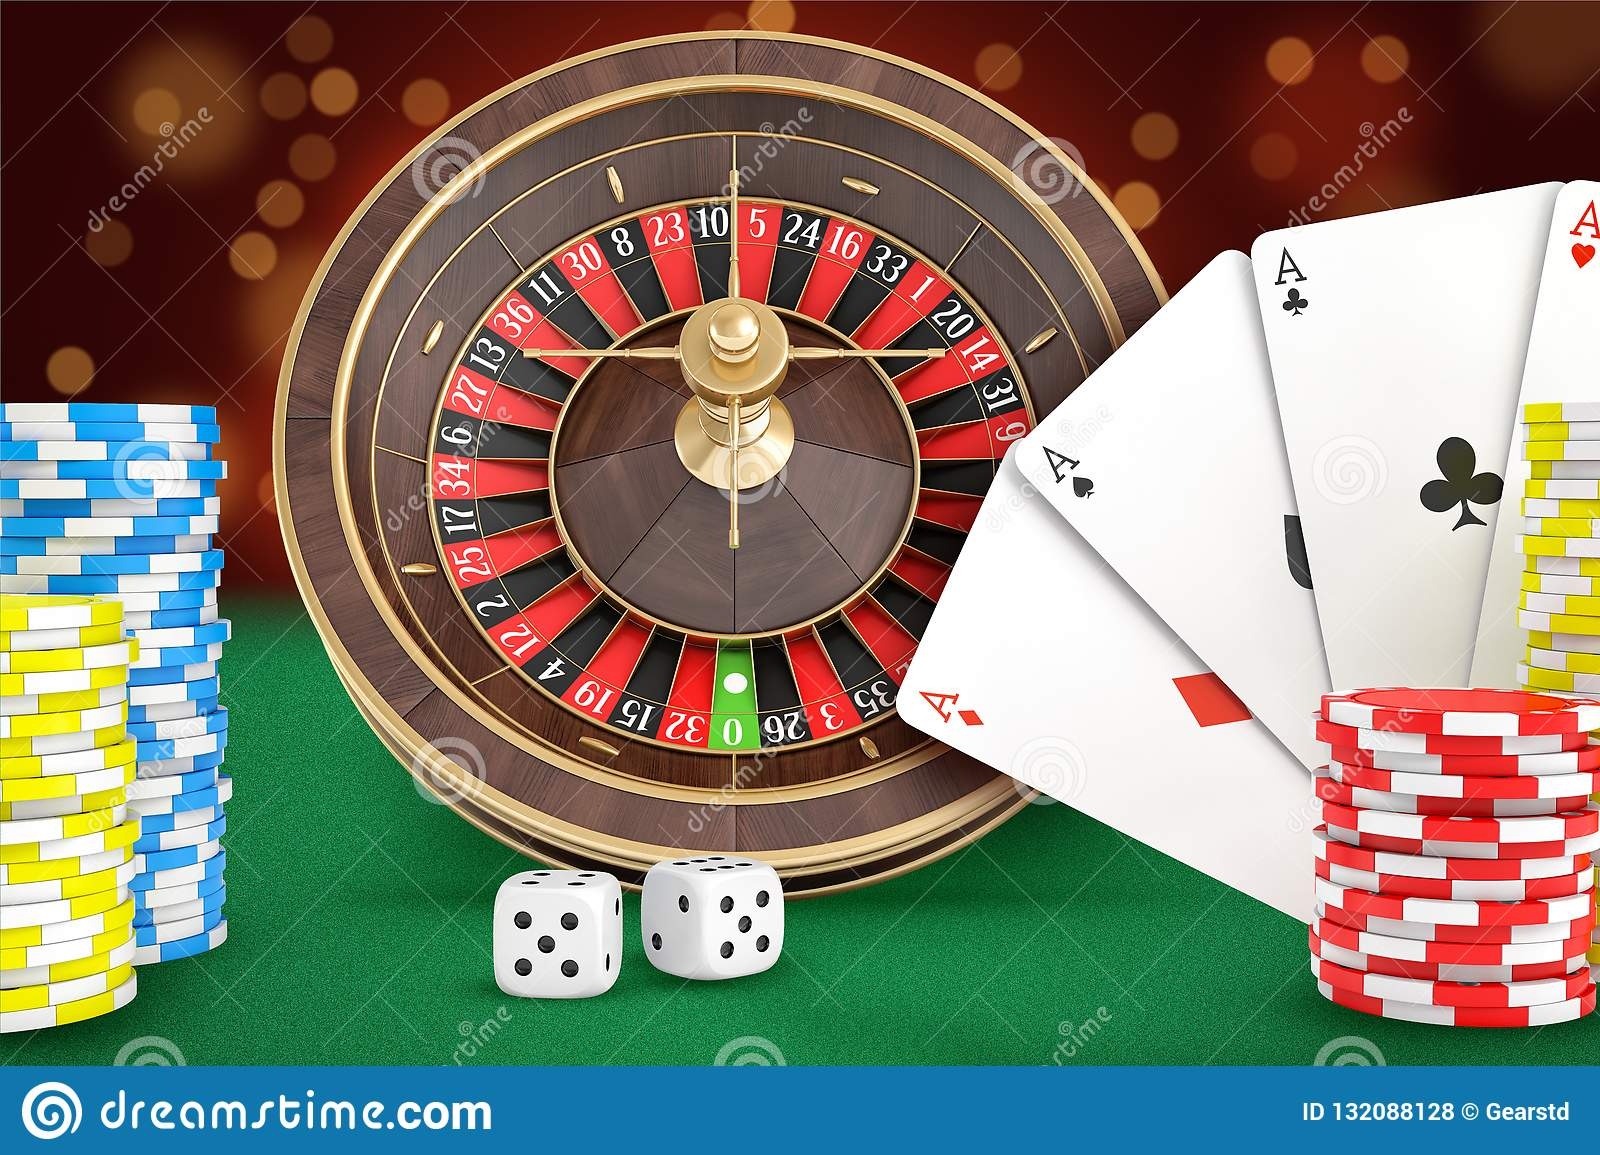 3d Rendering Of Casino Roulette Stands On A Green Felt Table With Cards Dice Chips Stacks Nearby Stock Illustration Illustration Of Fortune Play 132088128